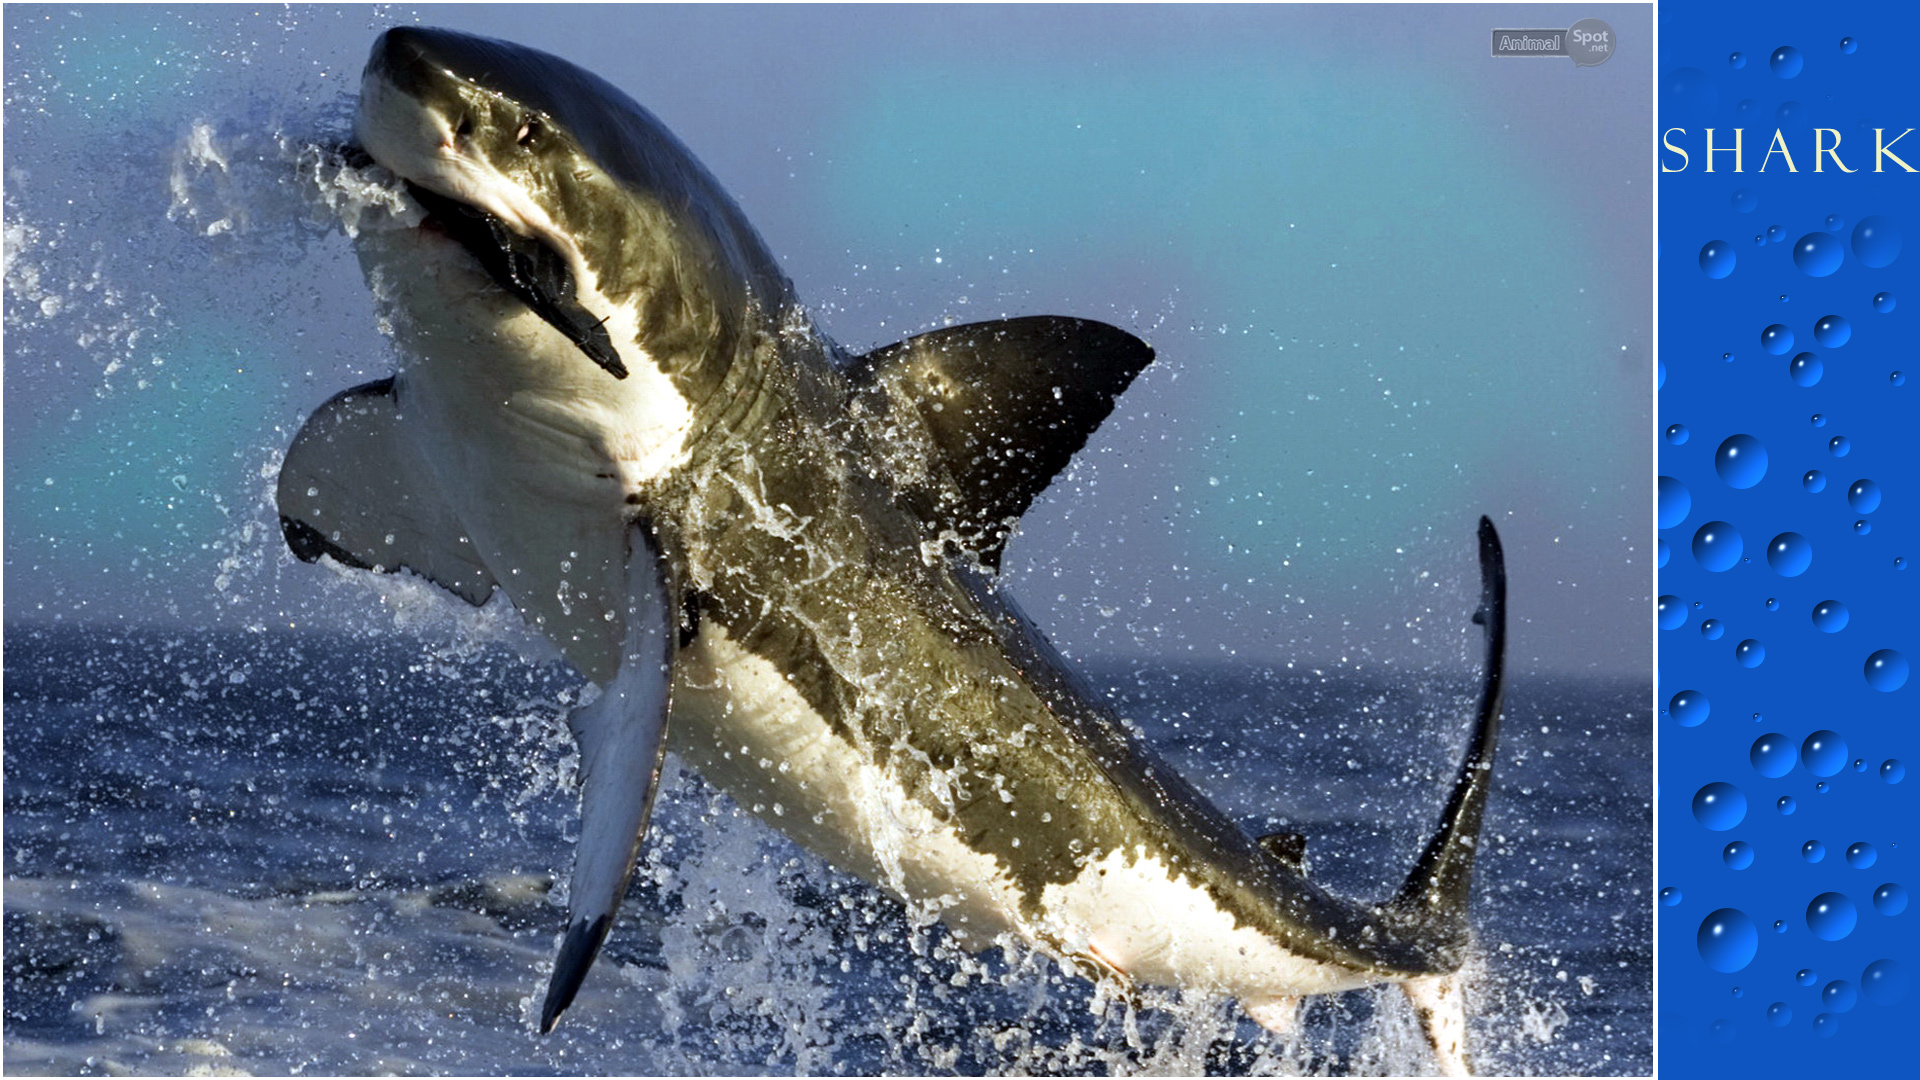 Great white shark fishing pictures Great White Shark: Richard Ellis, John McCosker